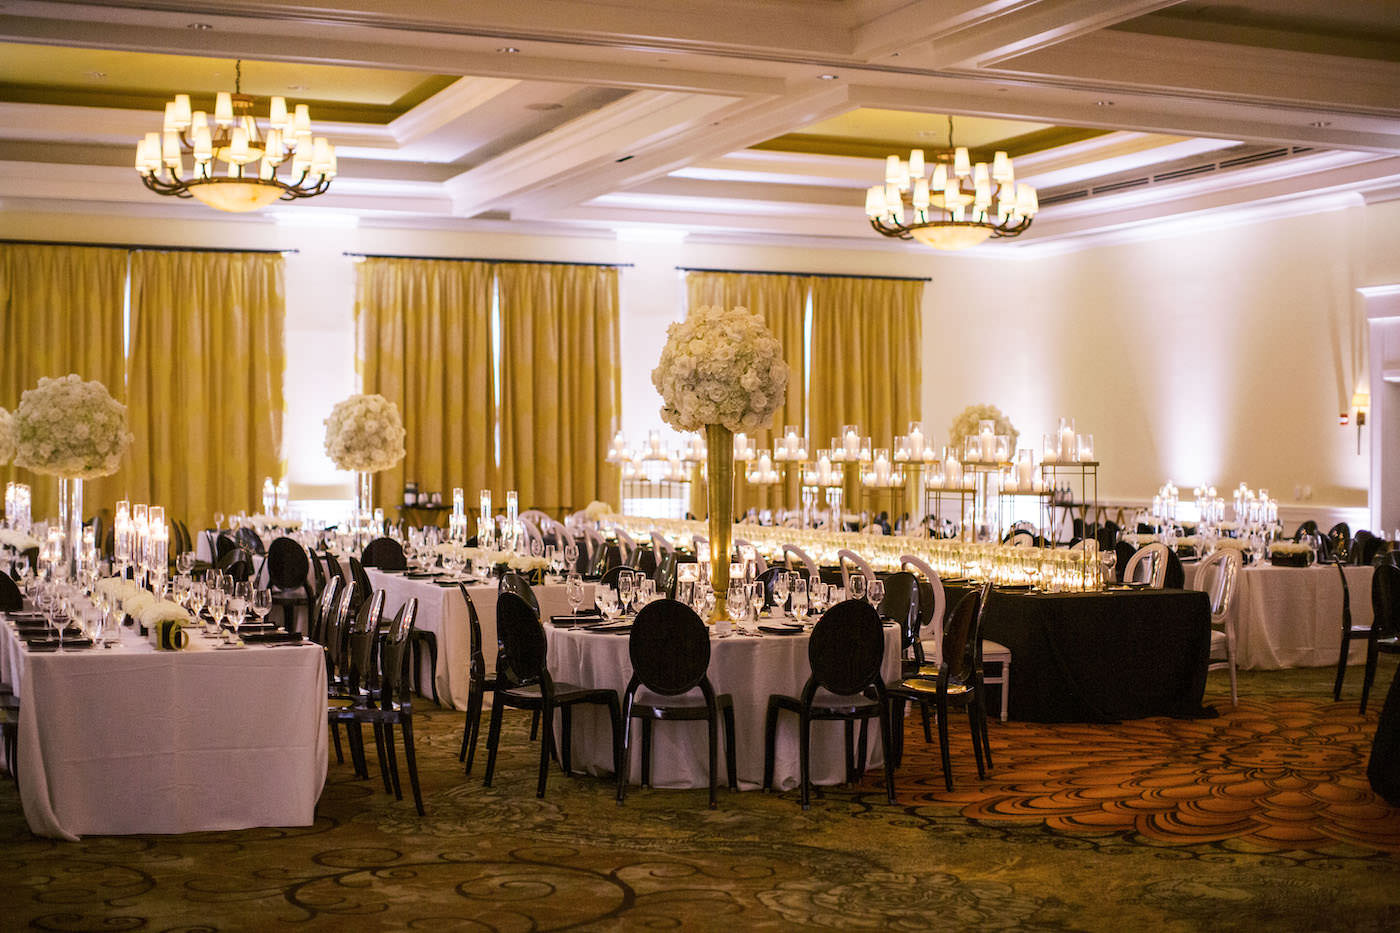 Classic Timeless Elegant Ballroom Wedding Reception Decor, Long Tables with White Linens, Black Chairs, Tall Gold Vases with White Floral Centerpieces | Clearwater Beach Wedding Hotel Venue Sandpearl Resort | Tampa Bay Wedding Planner Parties A'la Carte